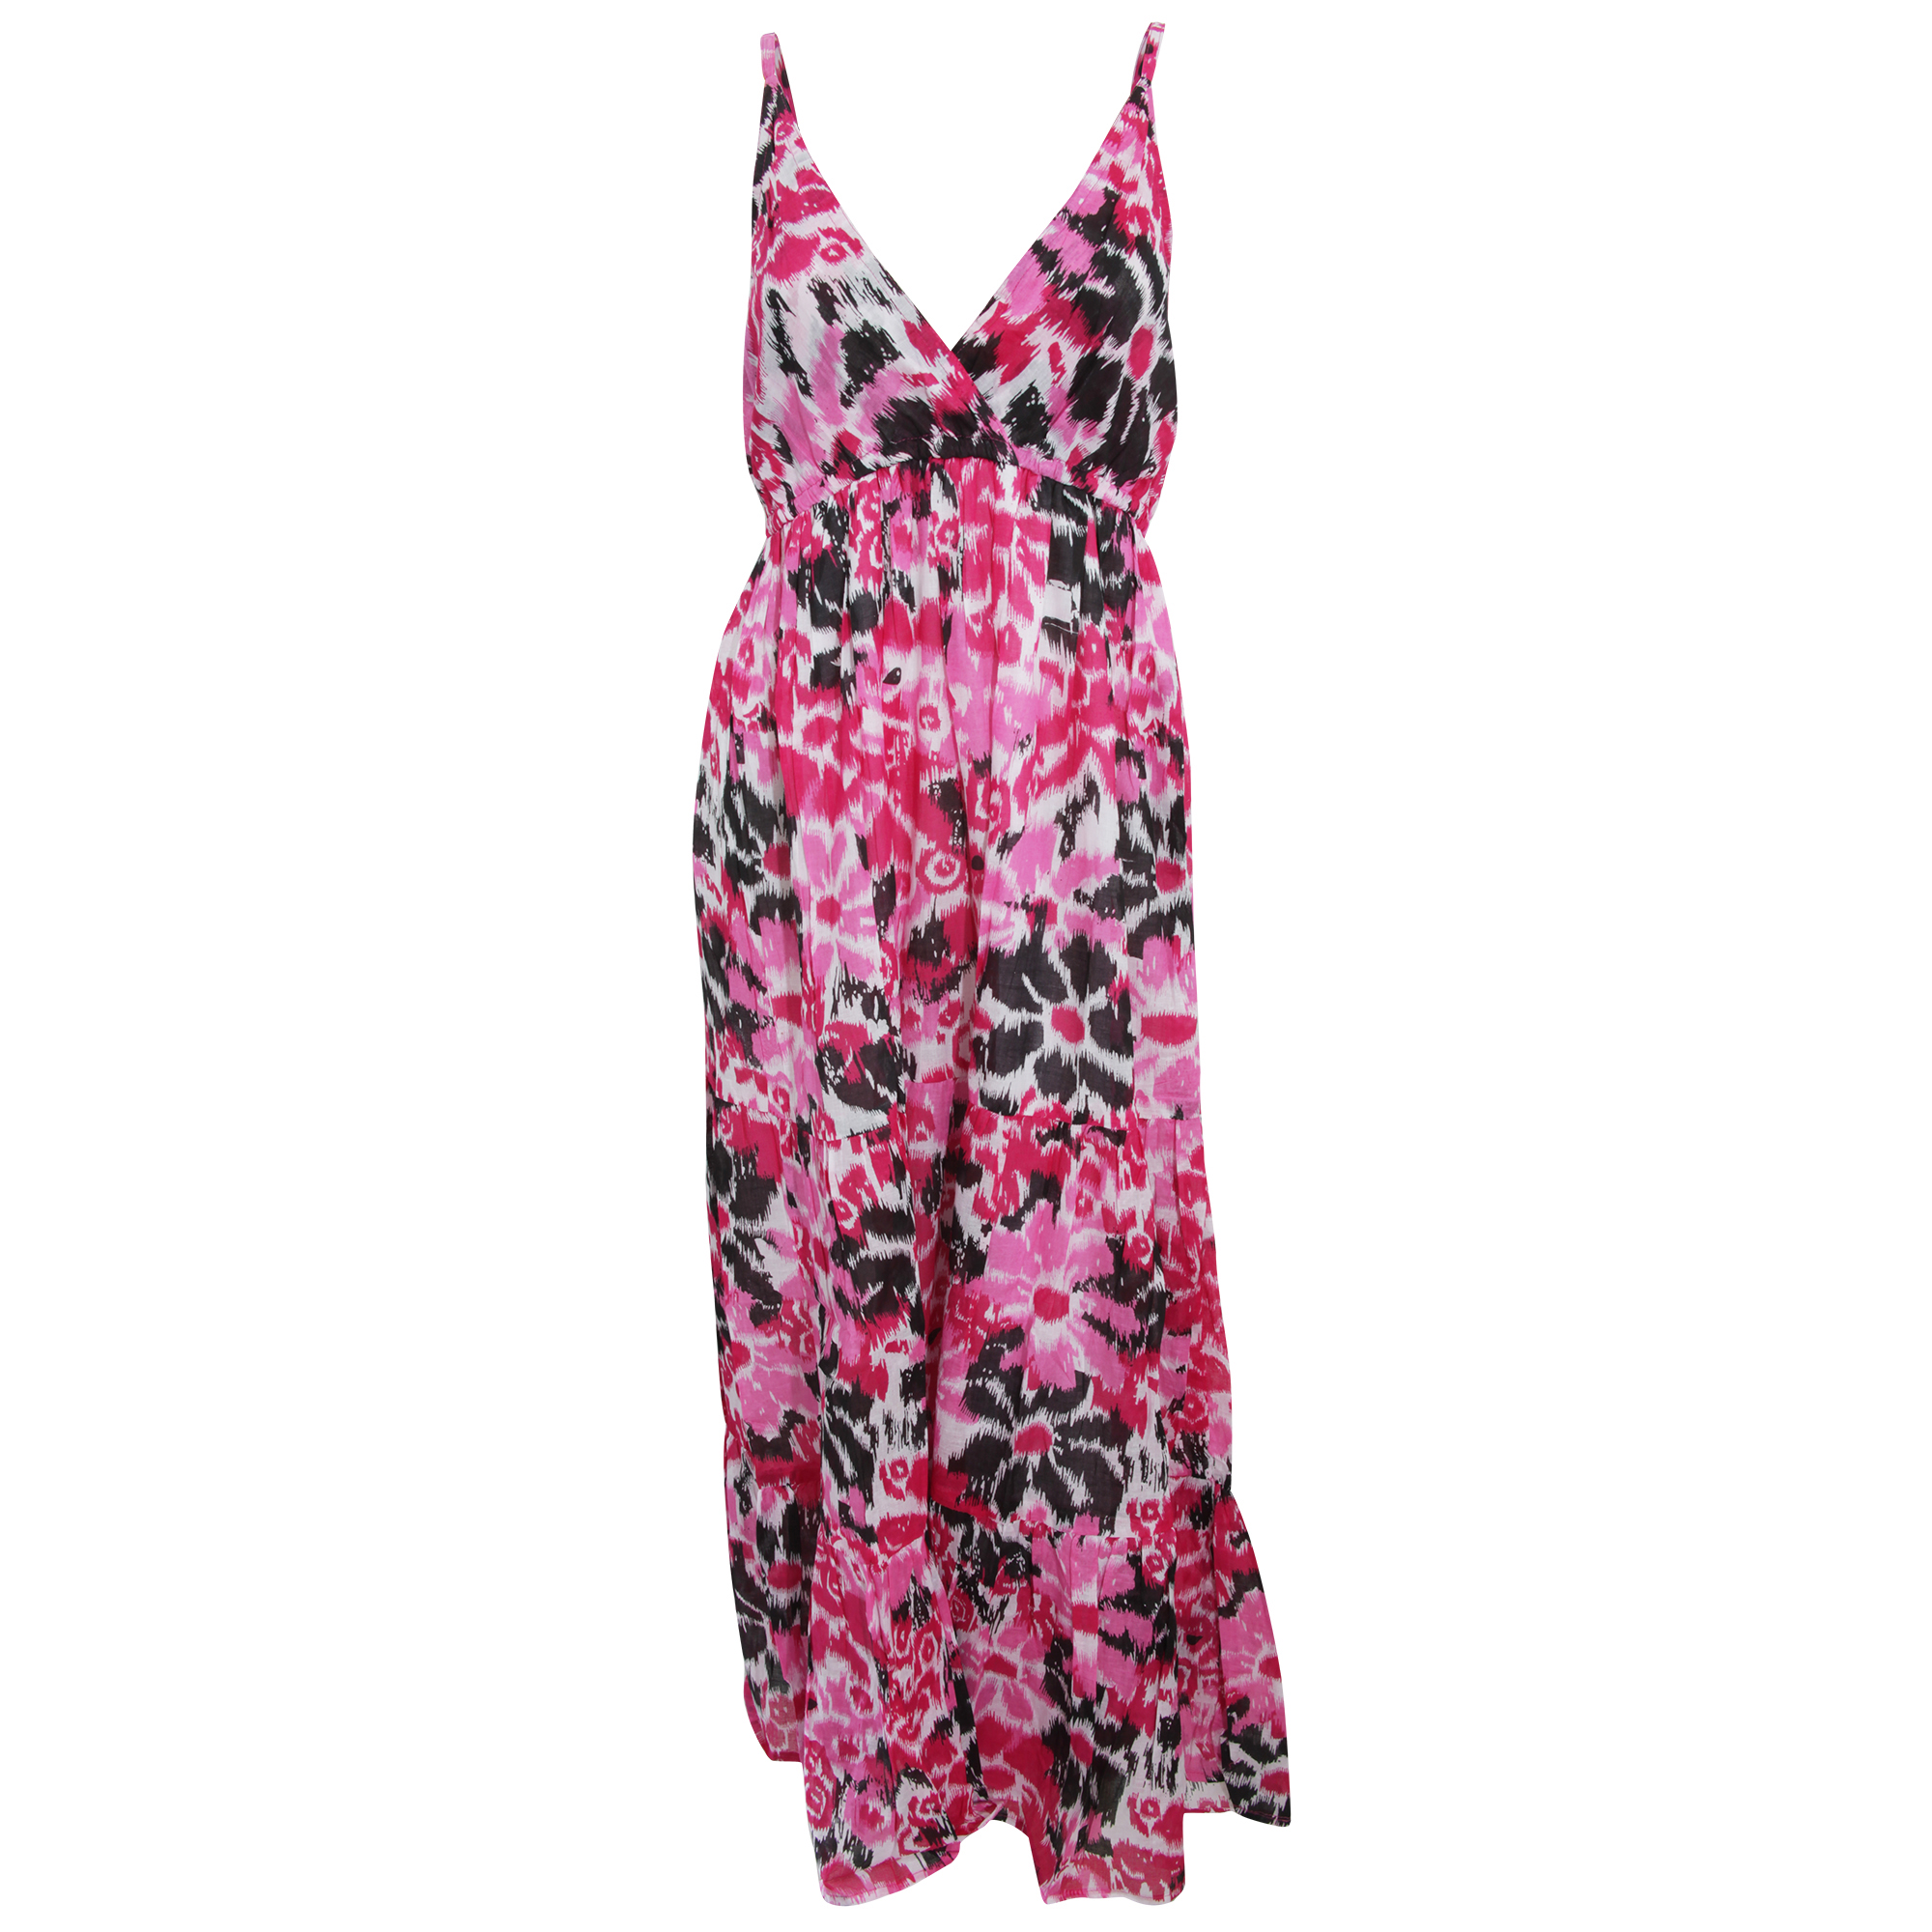 Bulk, Wholesale, Job Lot, Clearance Assorted Clothing (Dresses, Tops, Footwear And More) (Box 13) (Womens Pink Maxi Dresses (Set of 28))